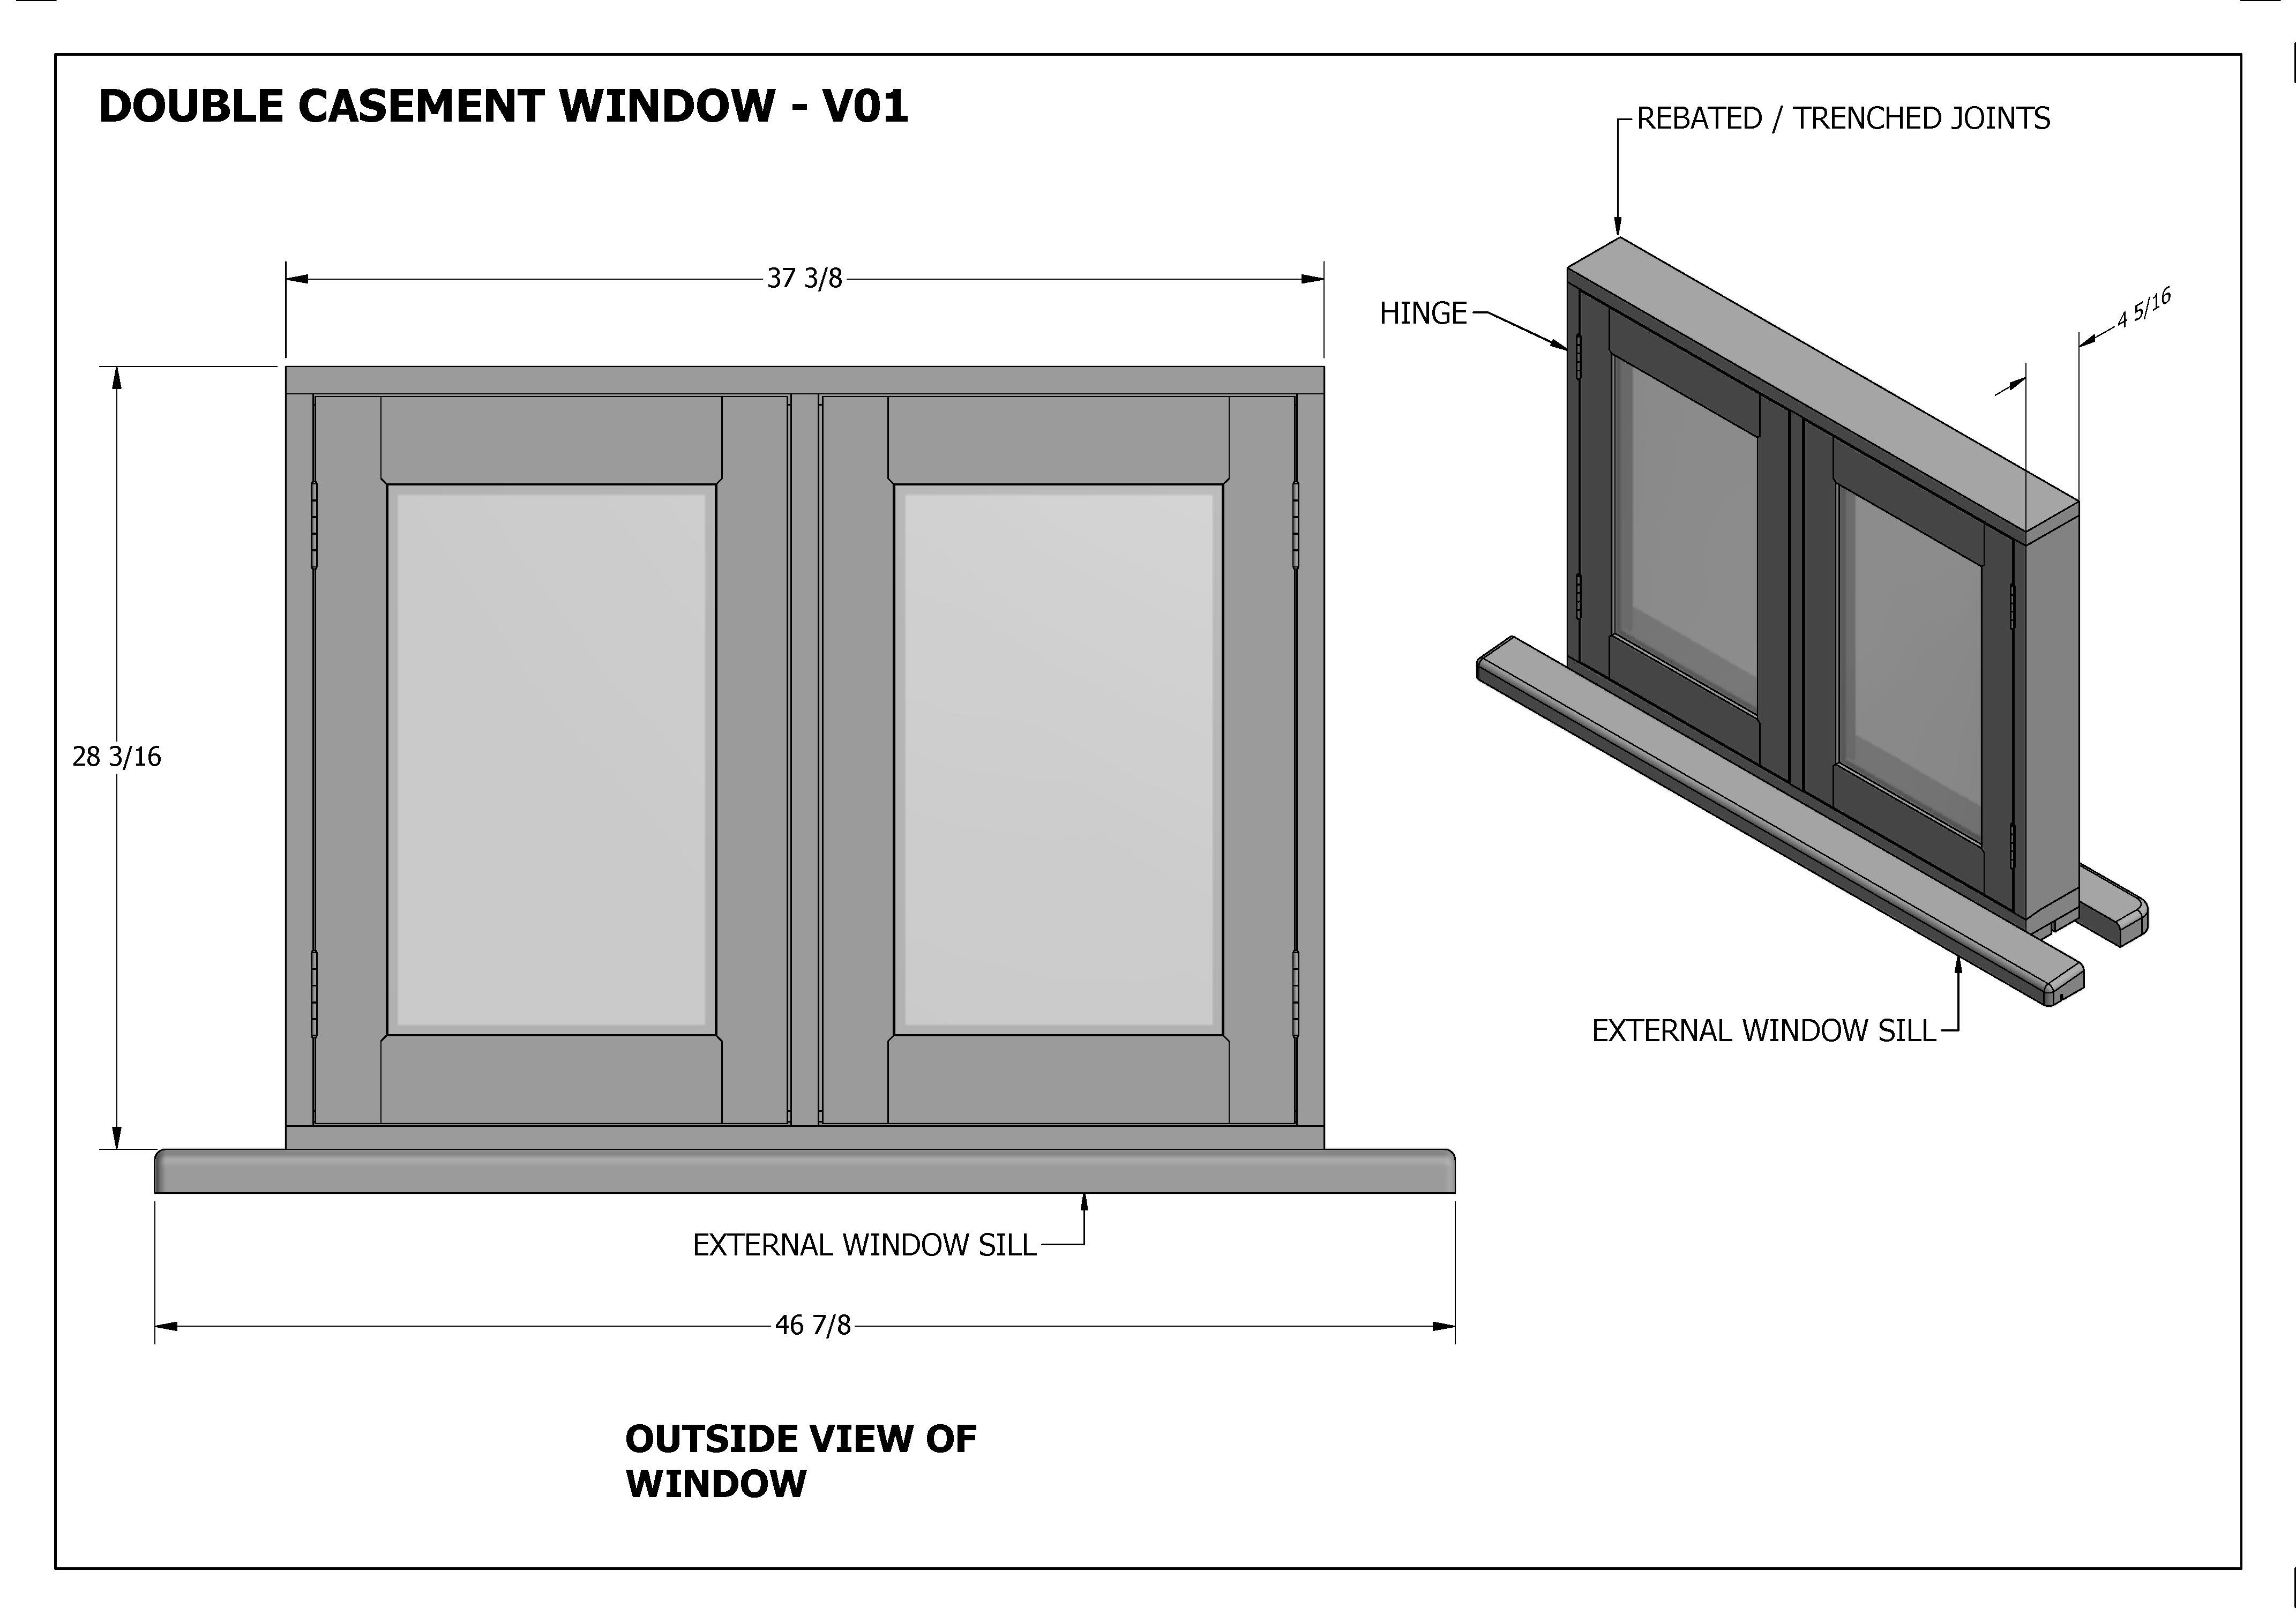 DOUBLE CASEMENT WINDOWS V01 - Build your own and SAVE BIG $$$